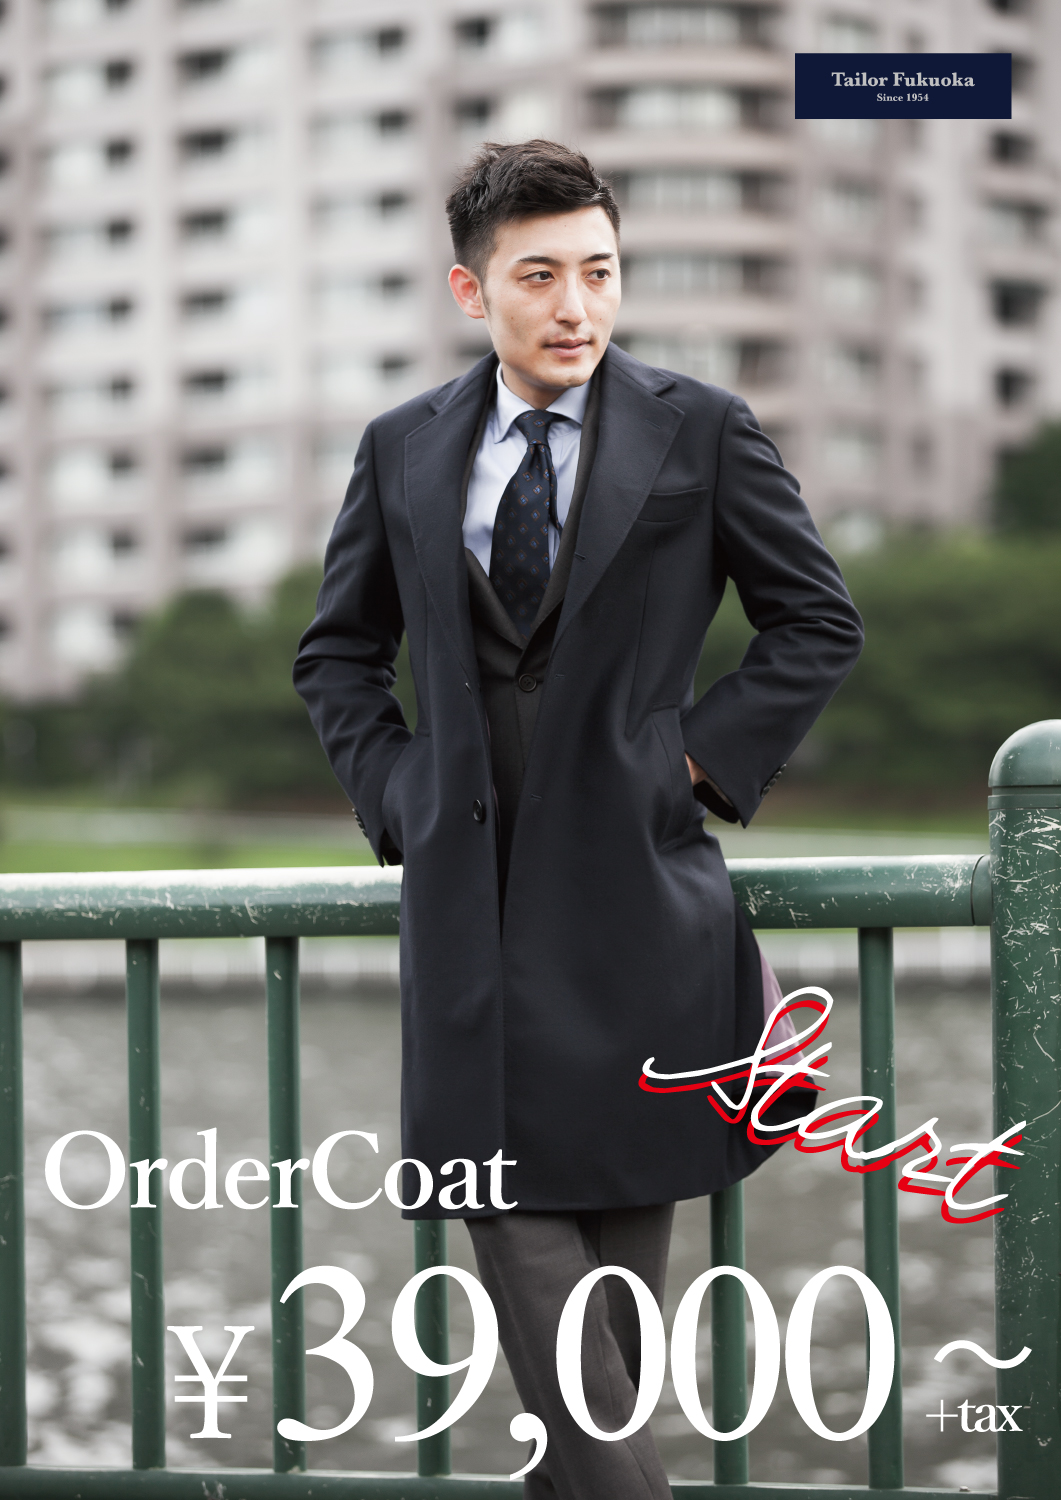 201910Tailor-Fukuoka-Order-Coat-Start